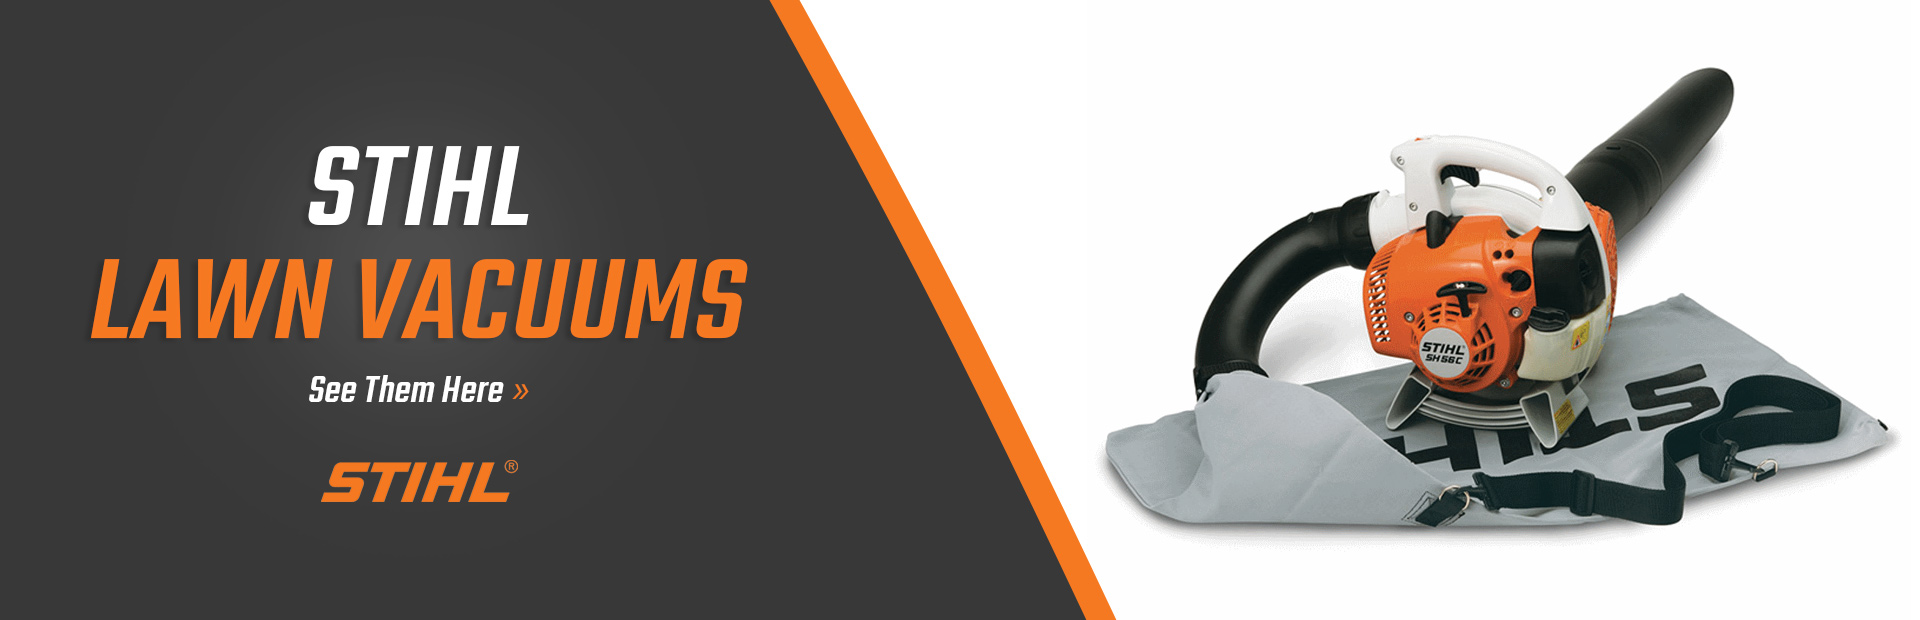 STIHL Lawn Vacuums: Click here now!